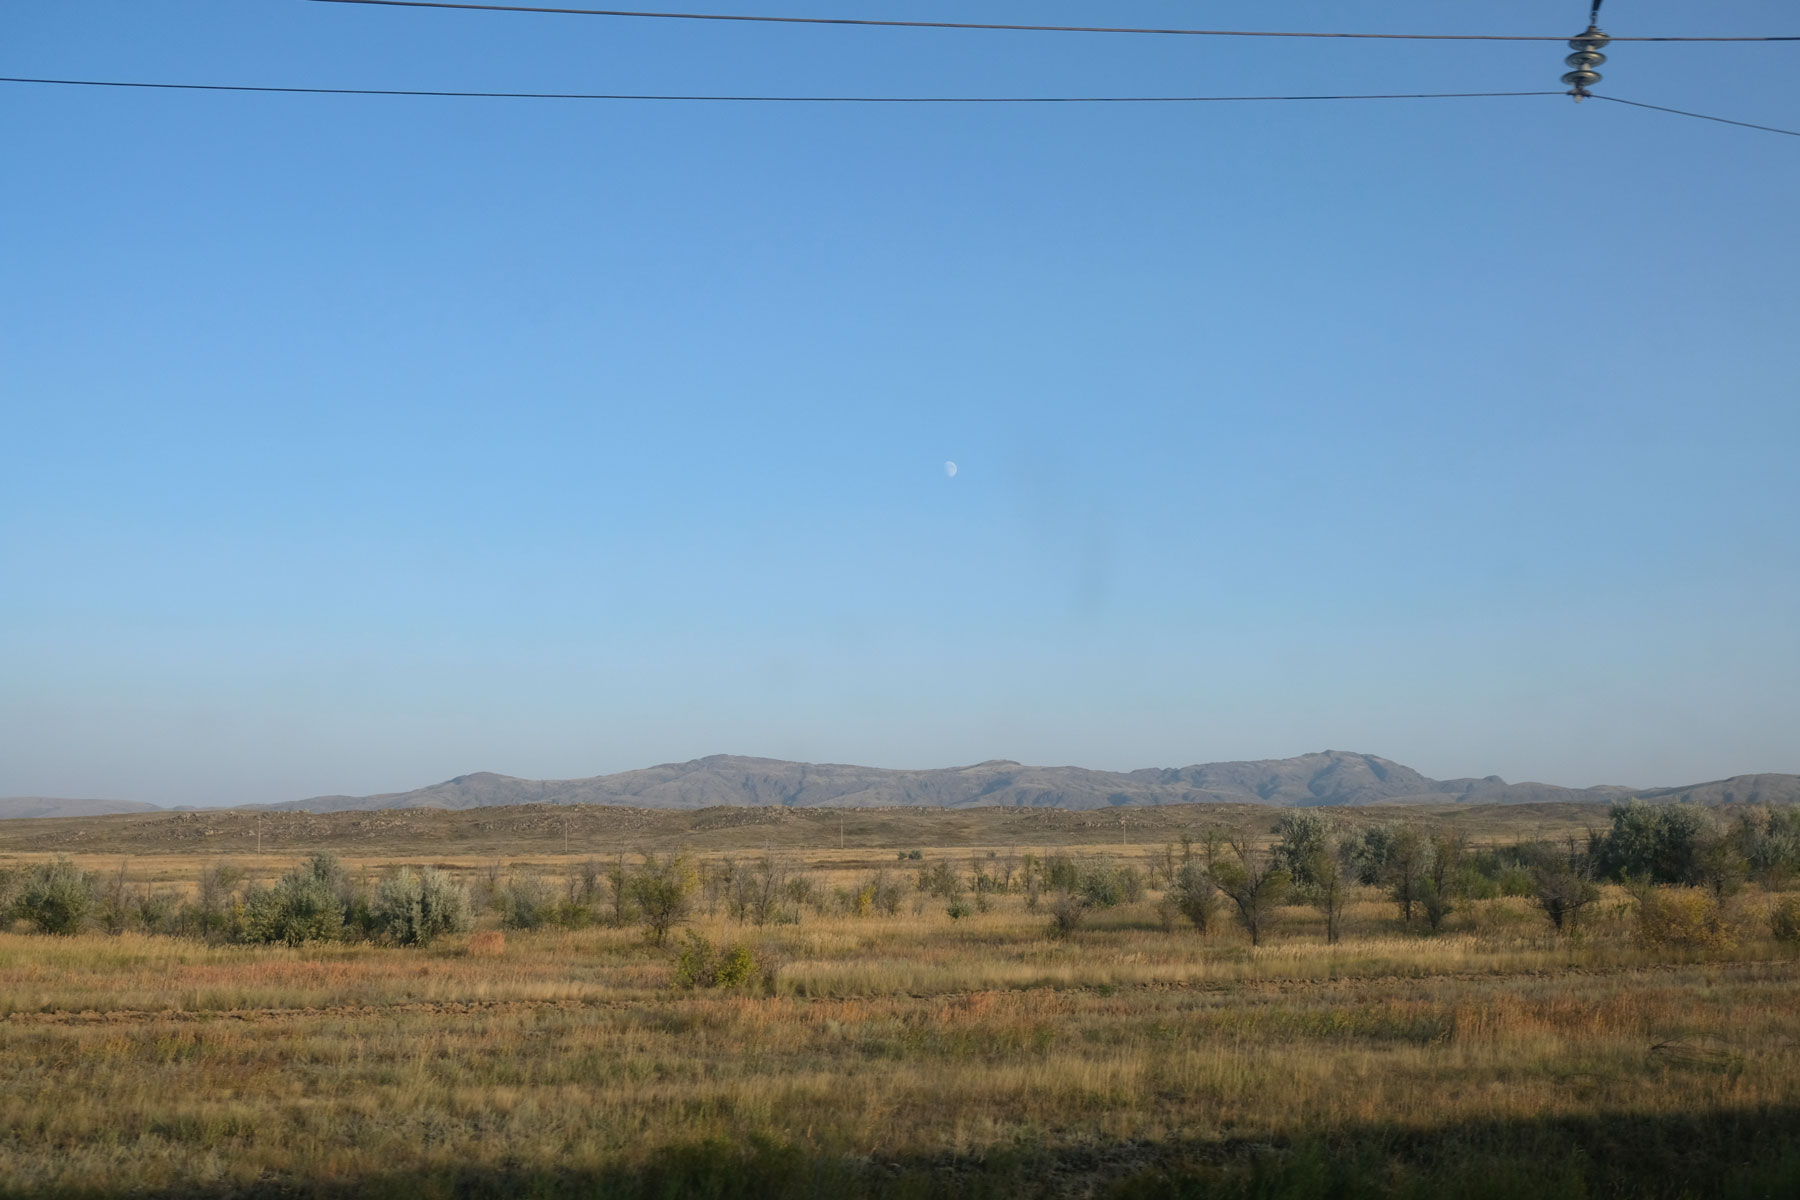 Steppe in Kasachstan.